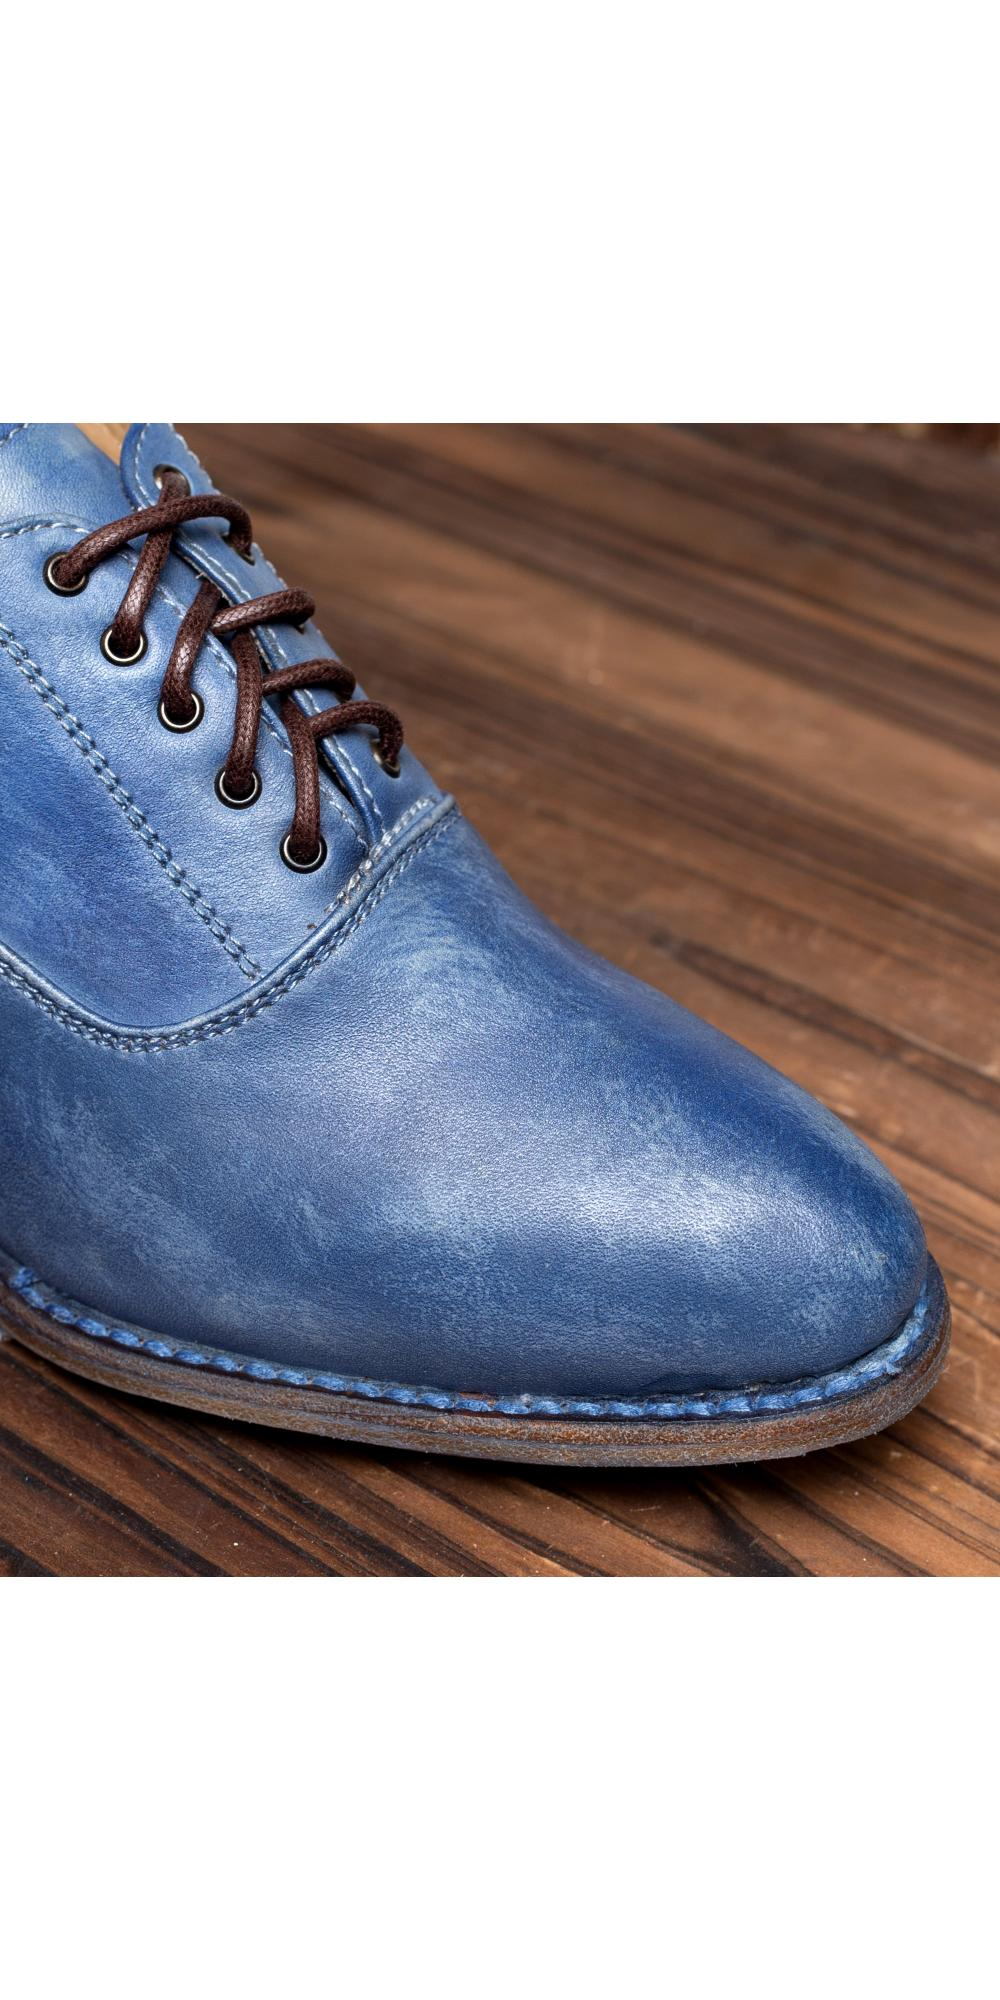 Victorian Style Shoes in Steal Blue